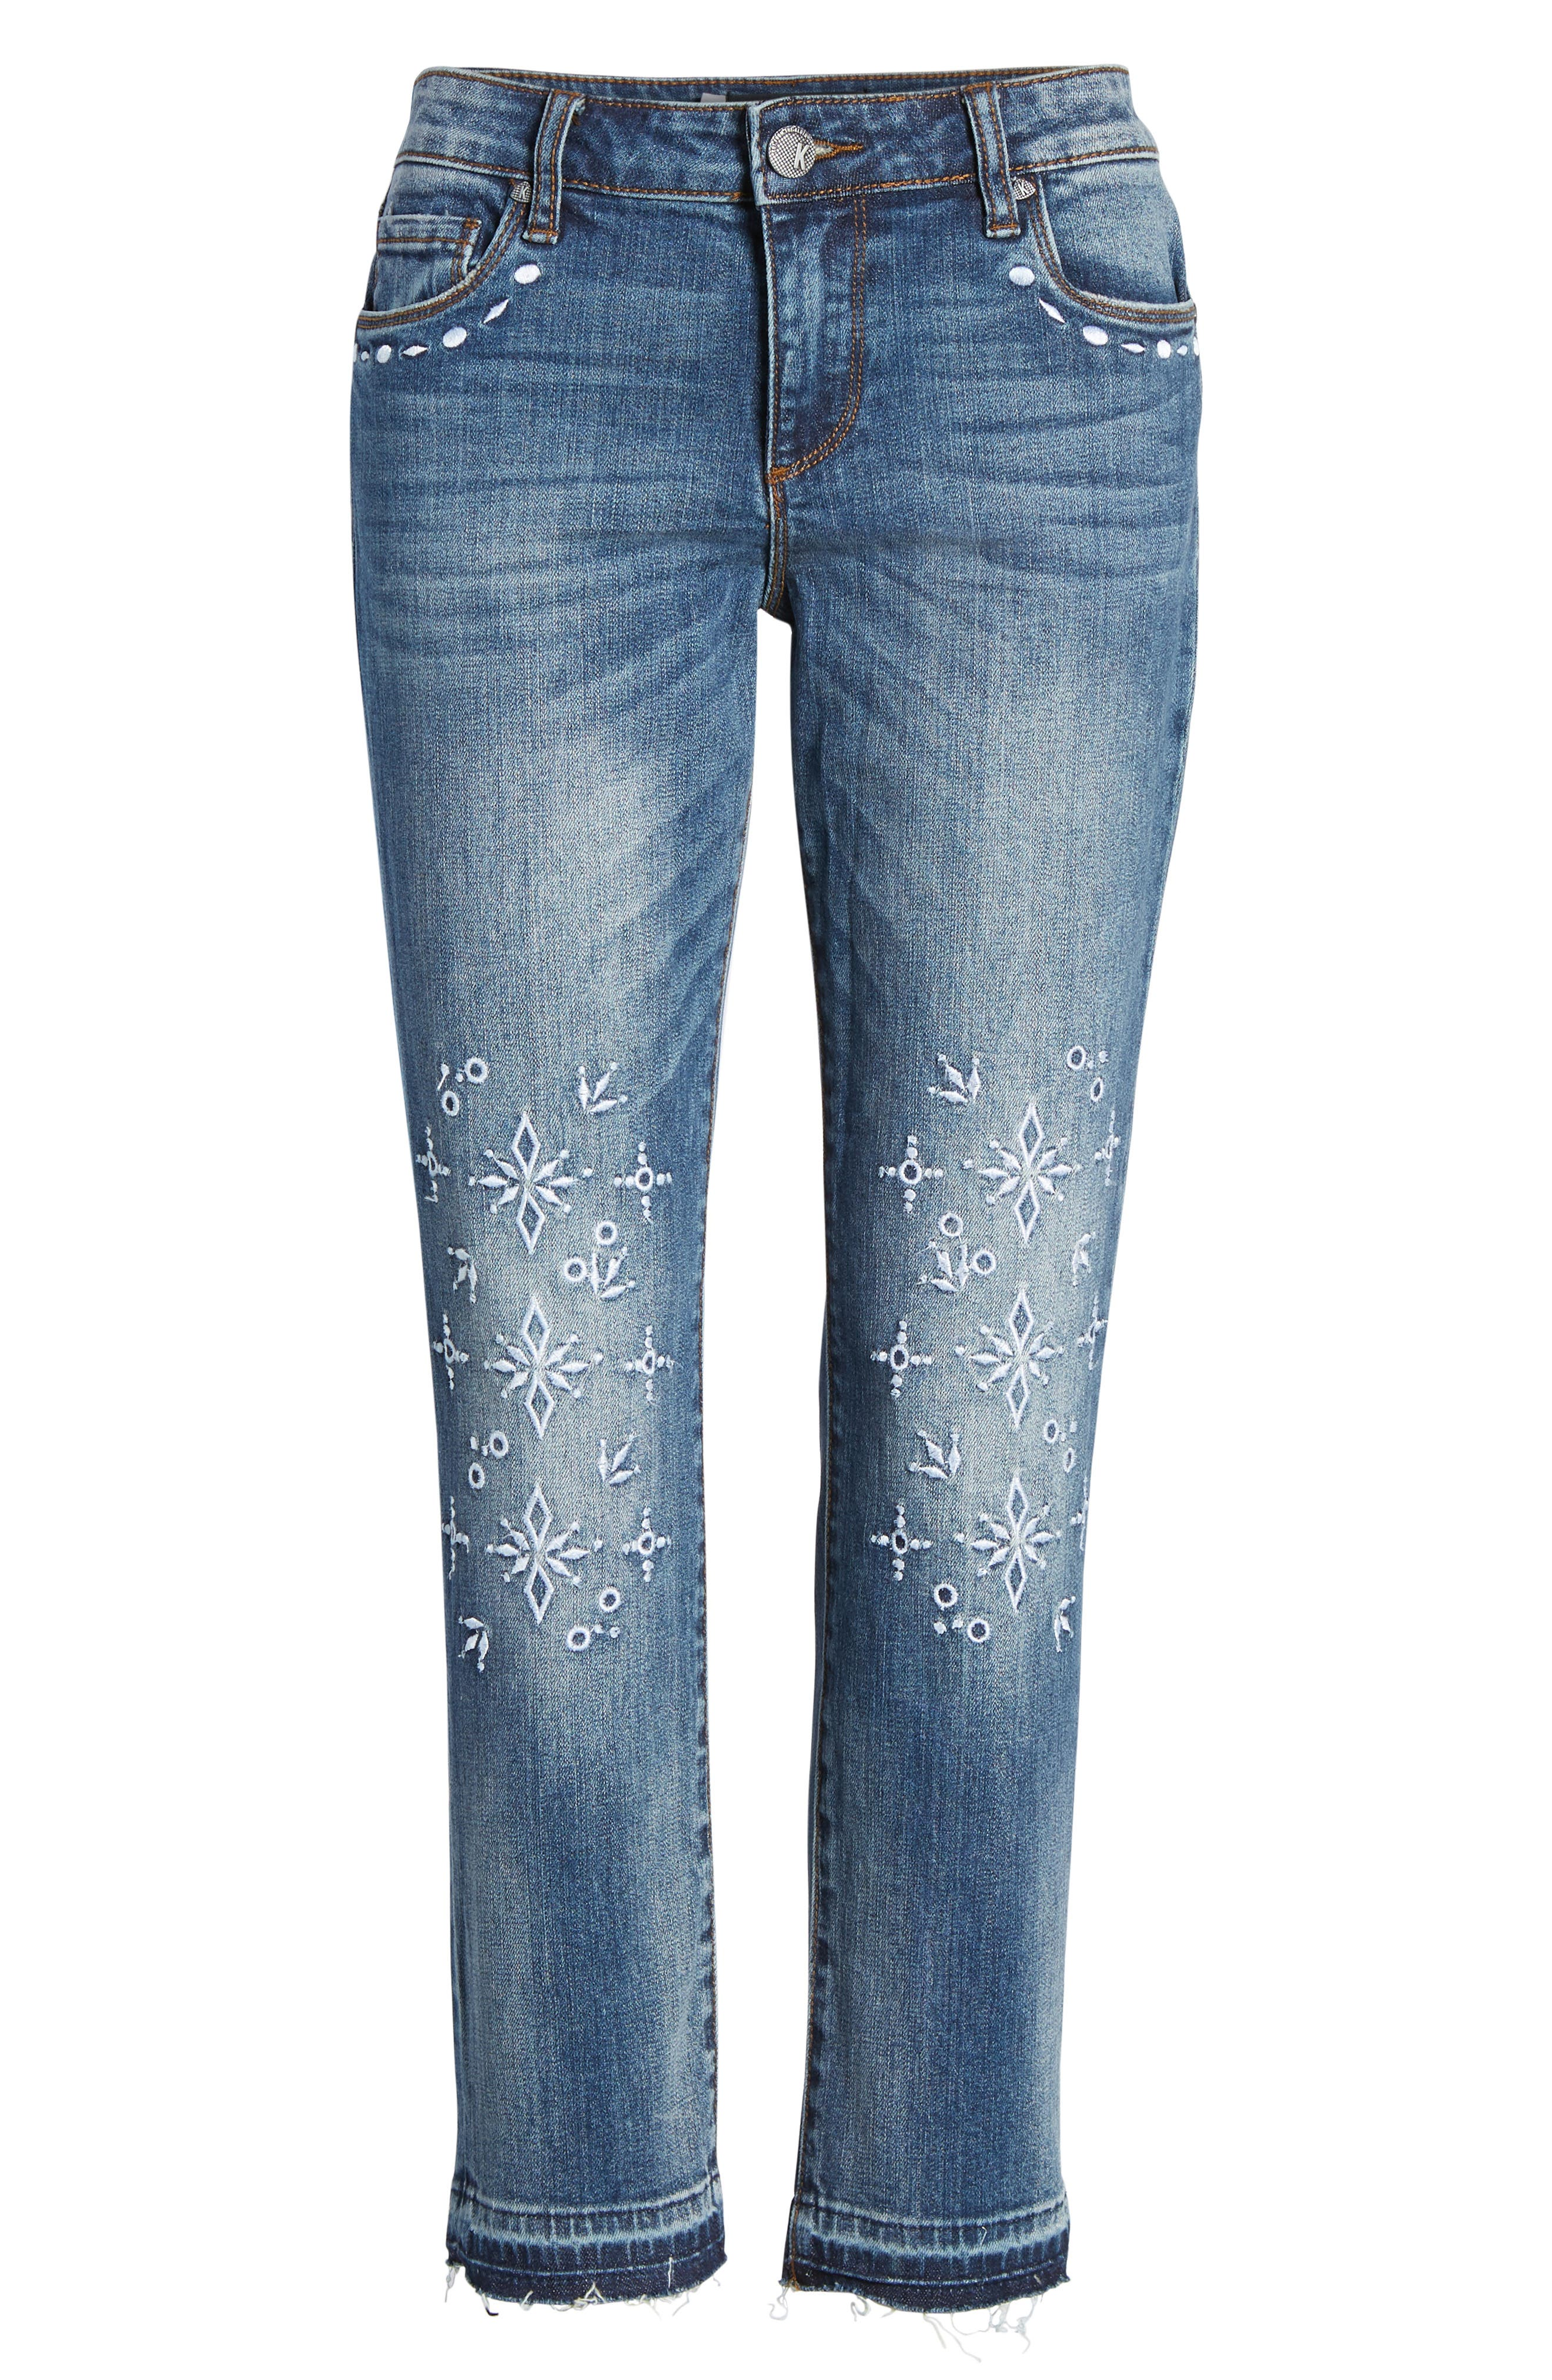 Reese Release Hem Embroidered Jeans,                             Alternate thumbnail 7, color,                             400